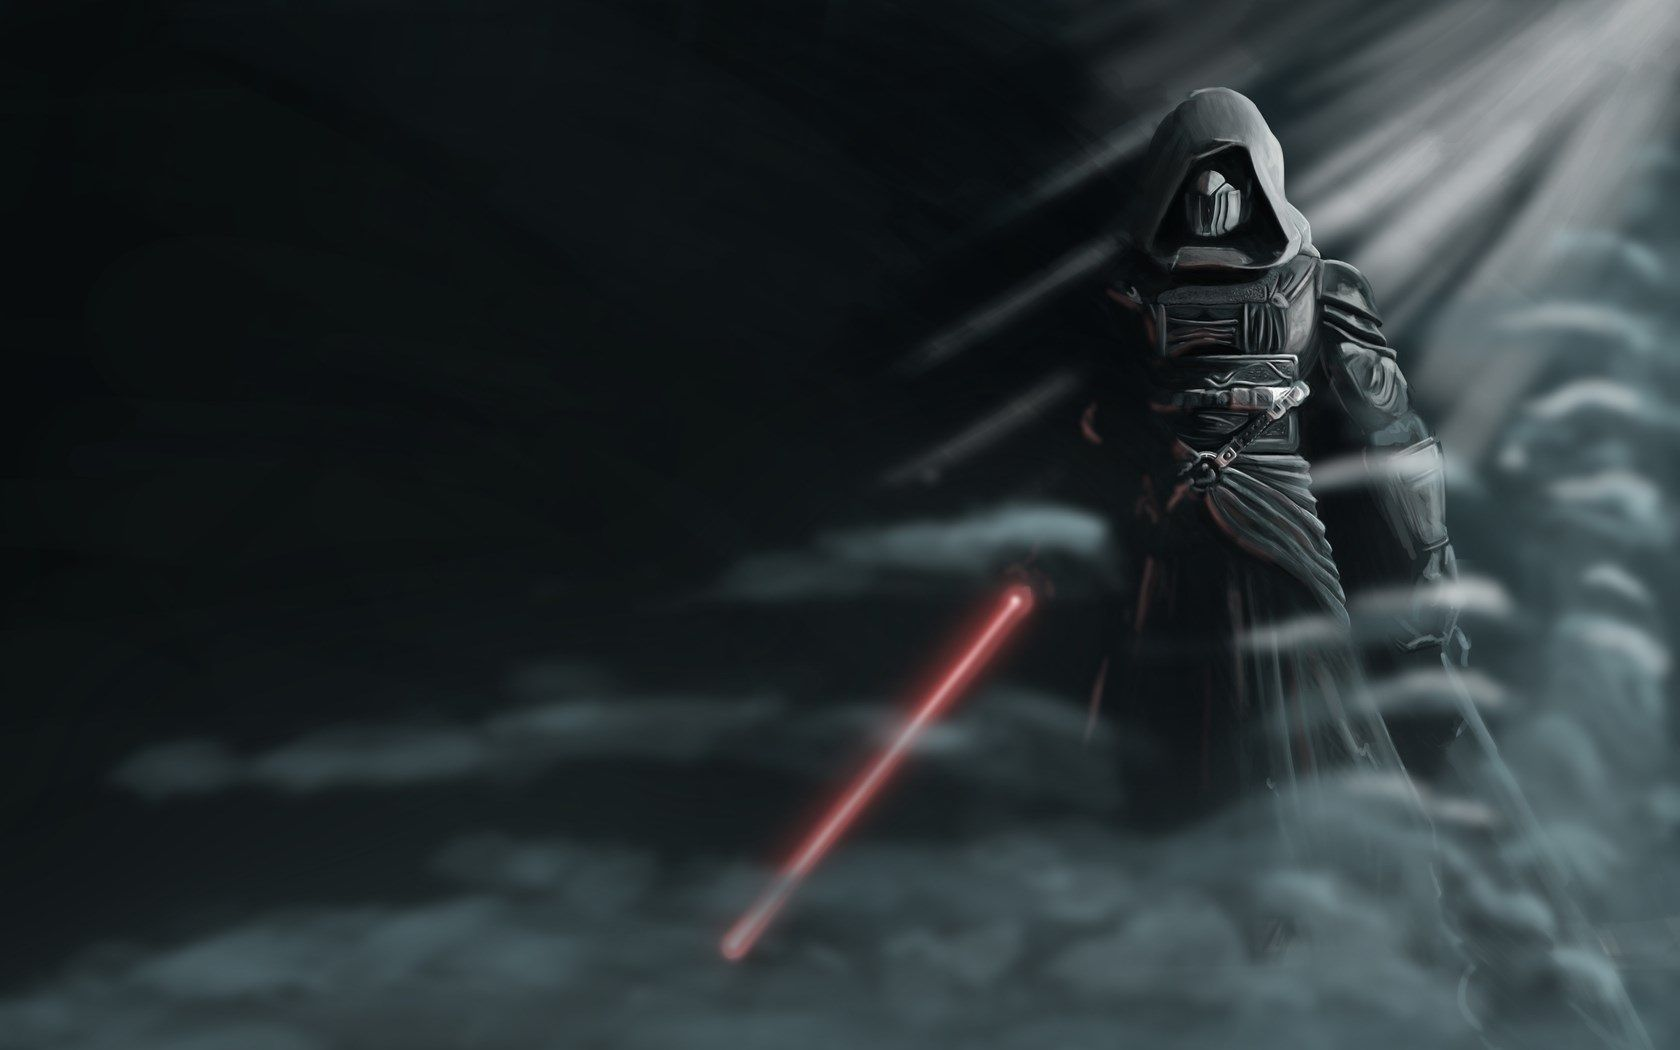 1680x1050 Star Wars Desktop Background Hd Wallpaper Star Wars Wallpaper Star Wars Pictures Darth Vader Wallpaper